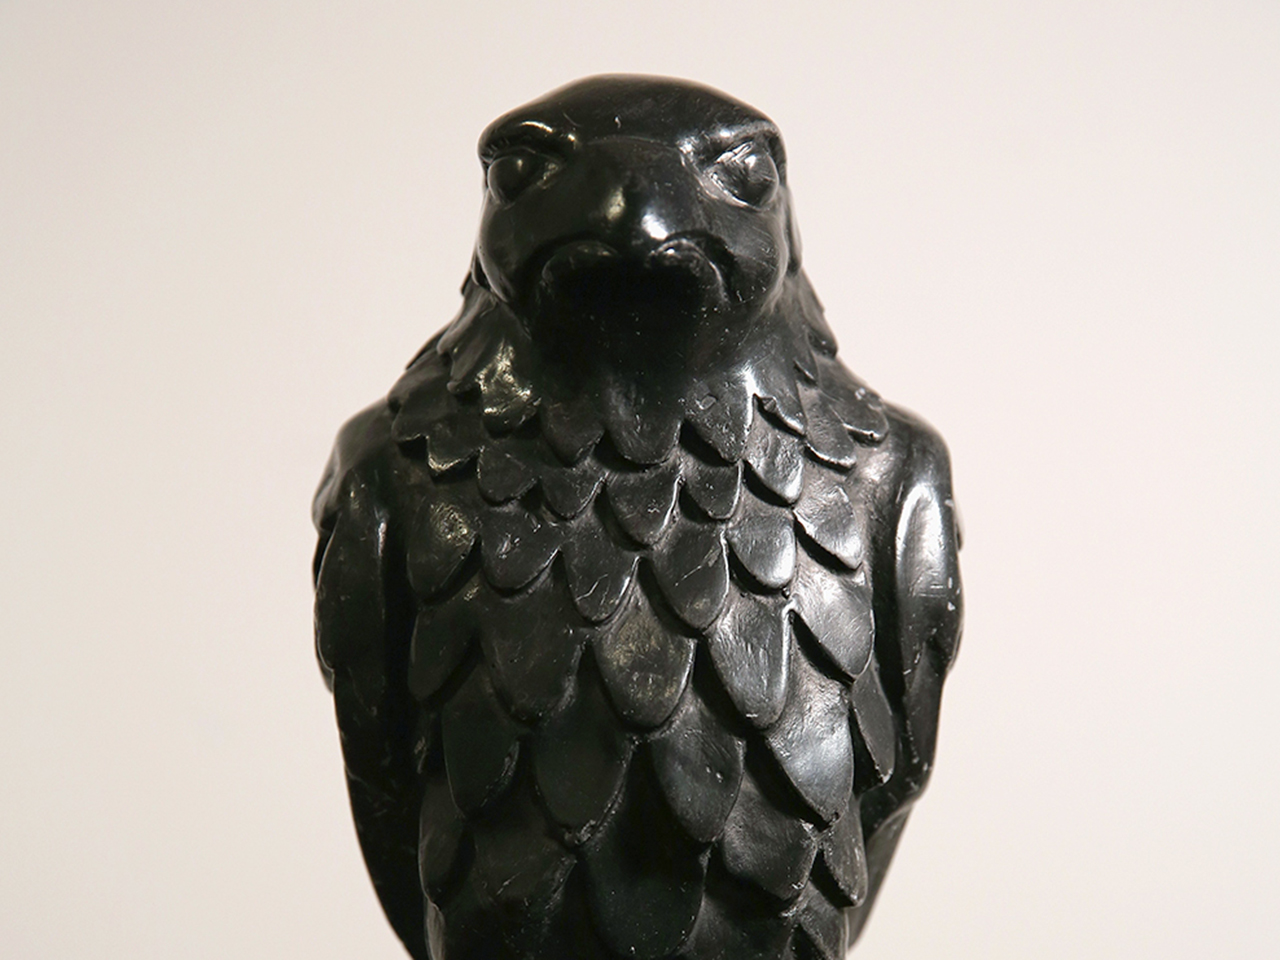 maltese falcon statue sells for over 4 million at